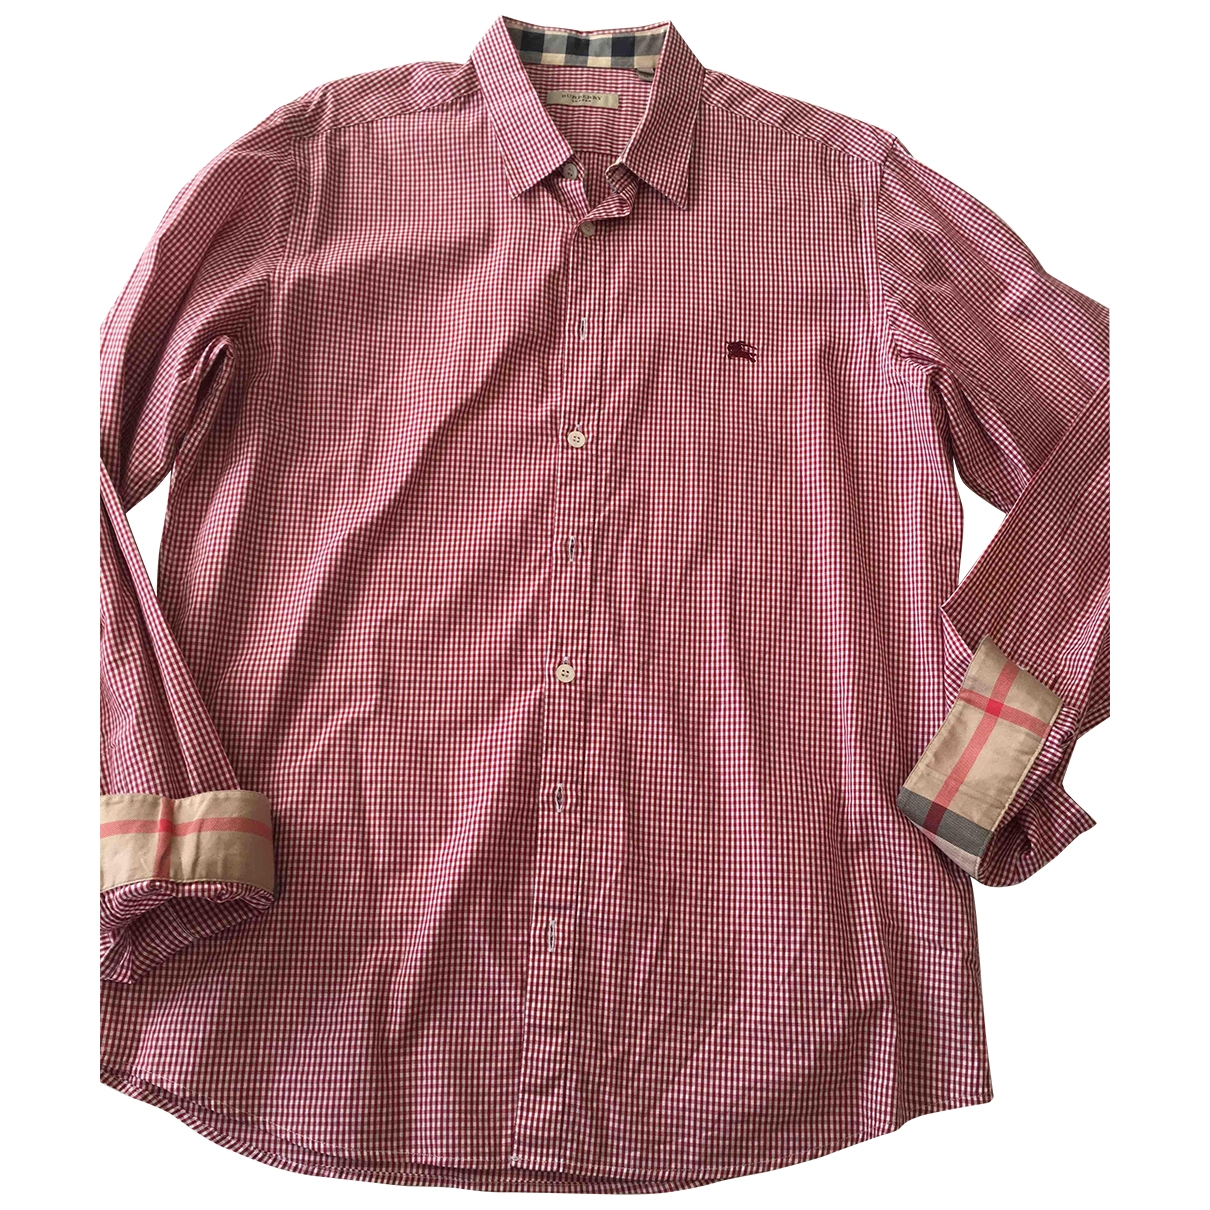 Burberry \N Red Cotton Shirts for Men M International